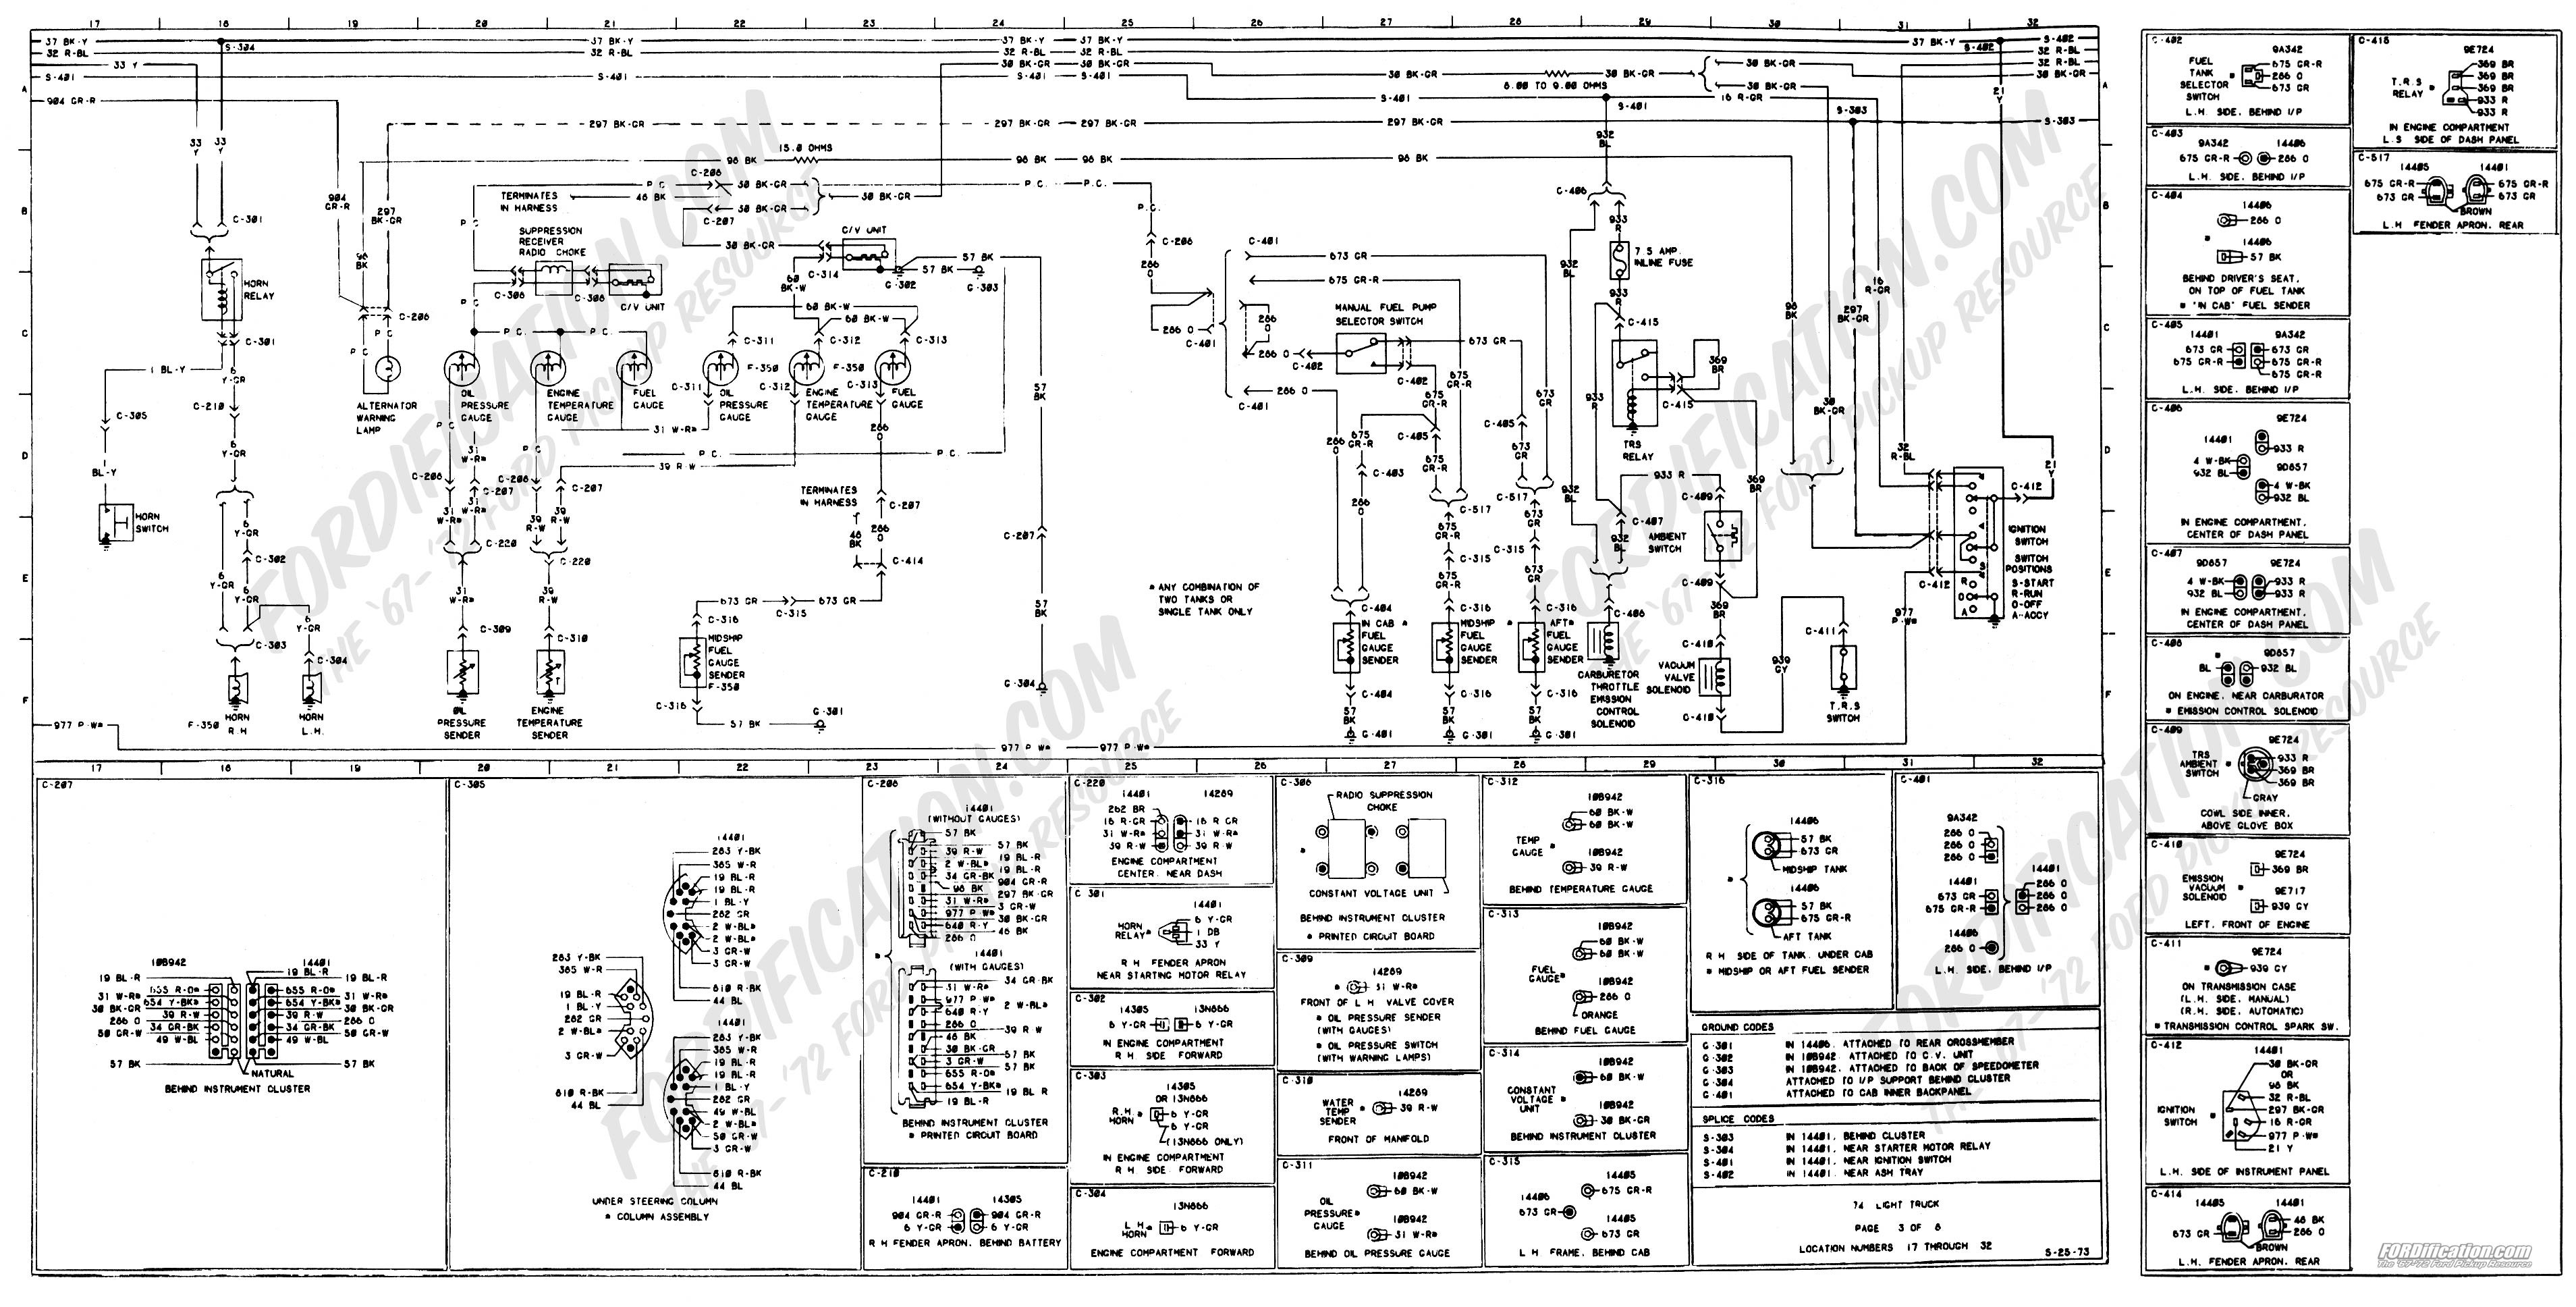 2000 sterling wiring diagram sterling lt9500 fuse box | wiring library #5